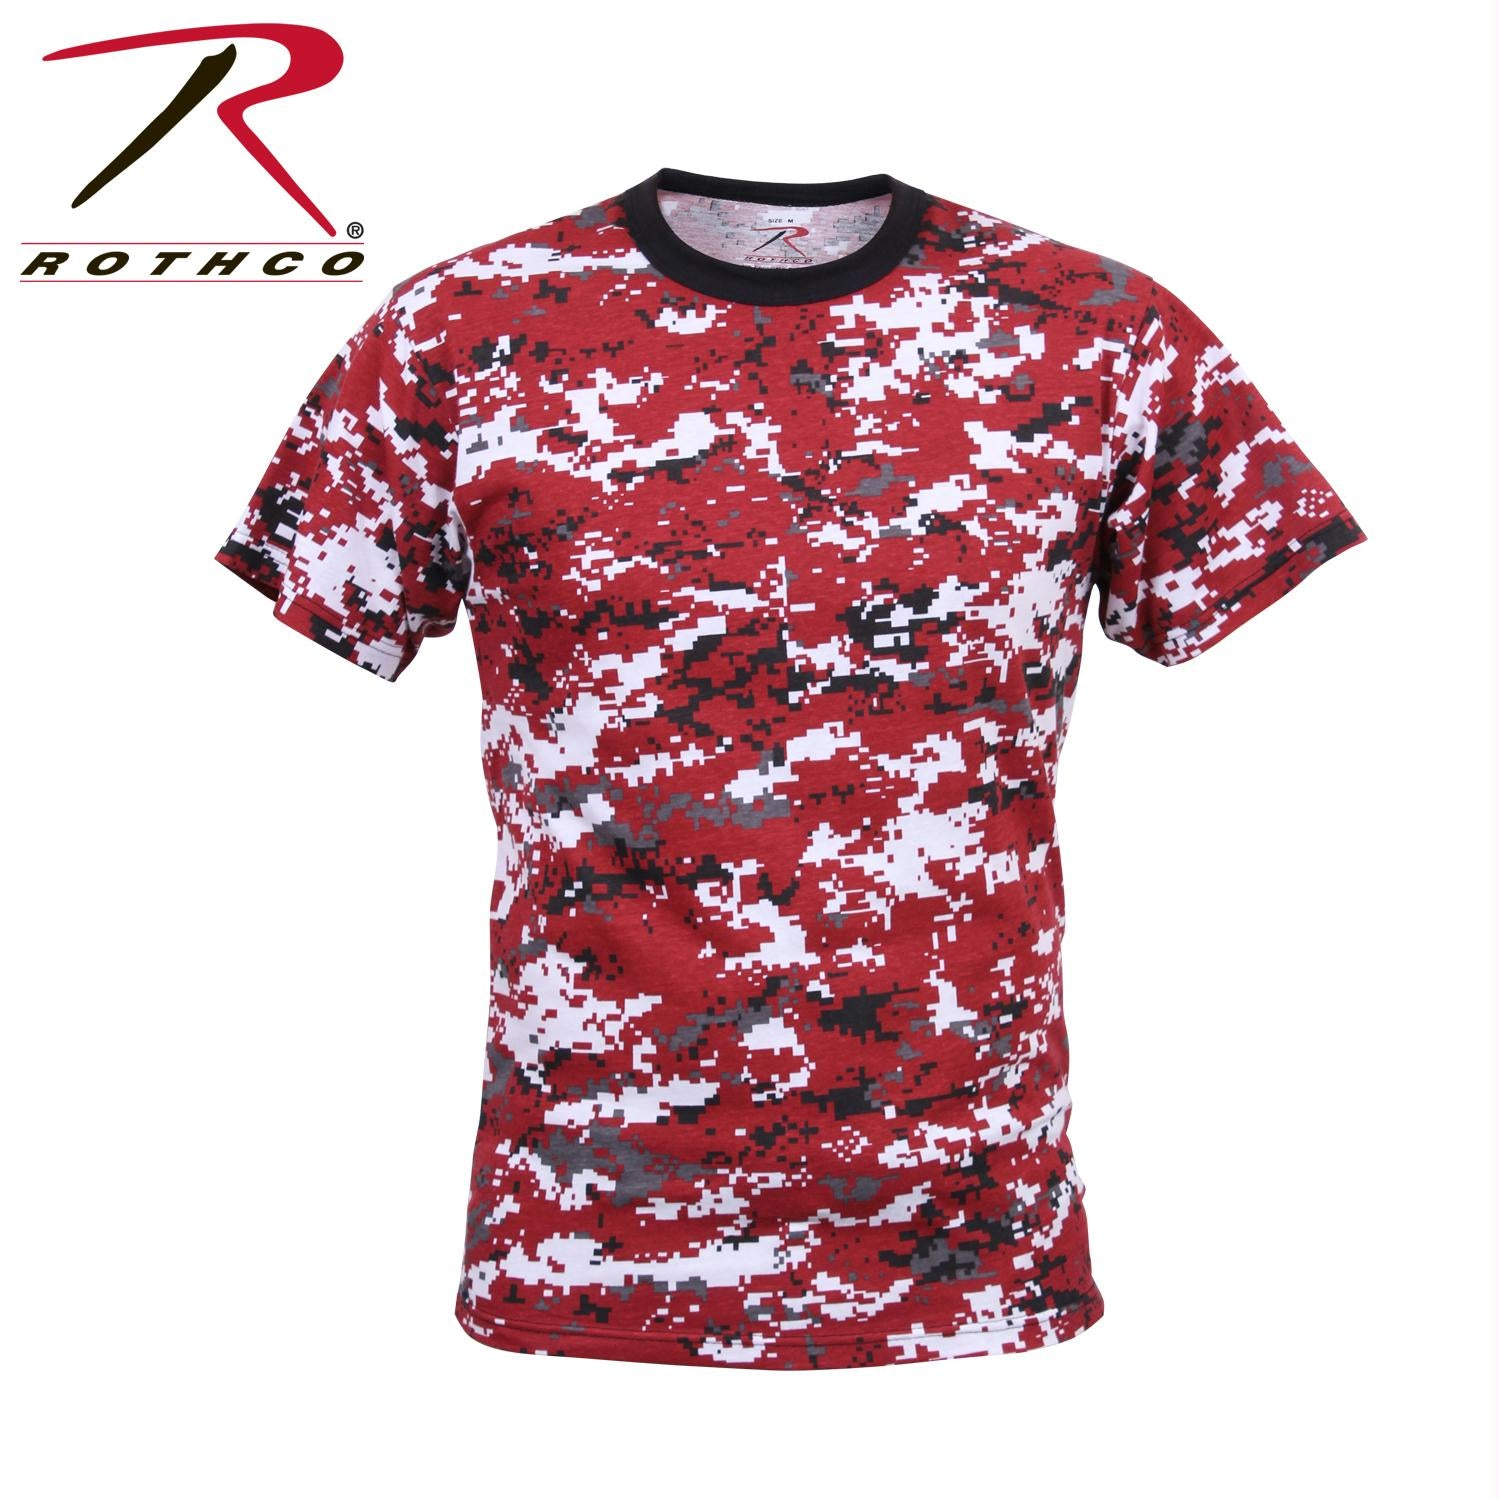 Rothco Digital Camo T-Shirt - Red Digital Camo / L